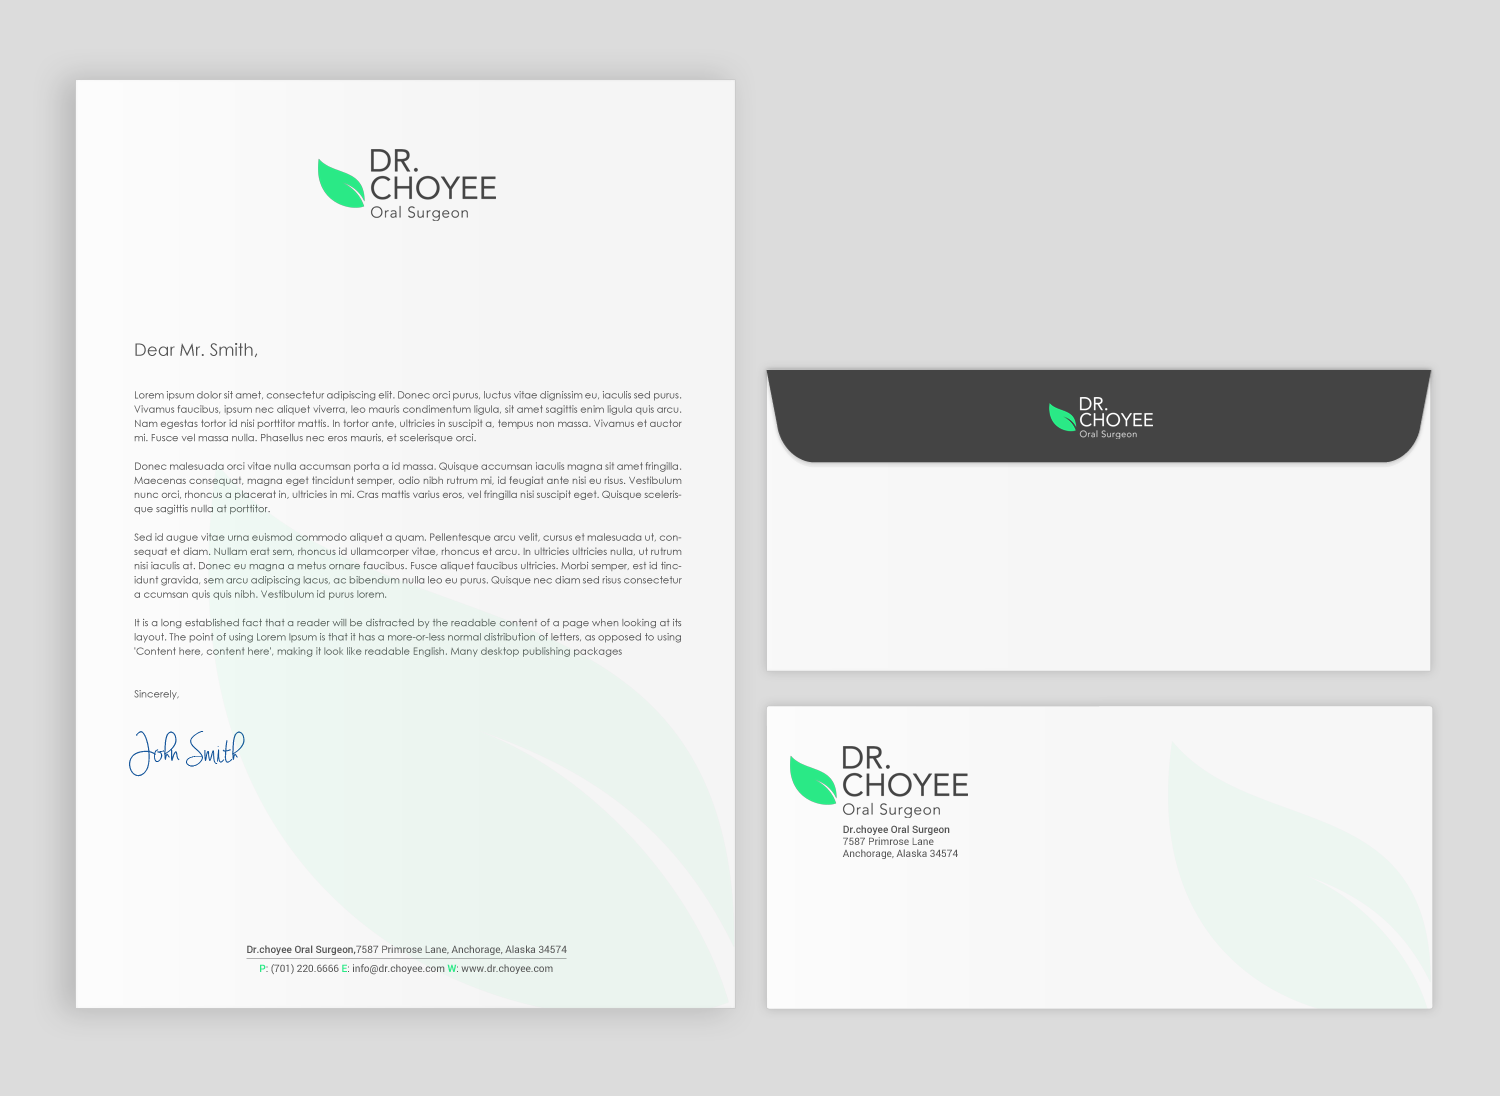 Serious Professional Office Stationery Design For Simon K Choyee Dds Inc In United States 18272496